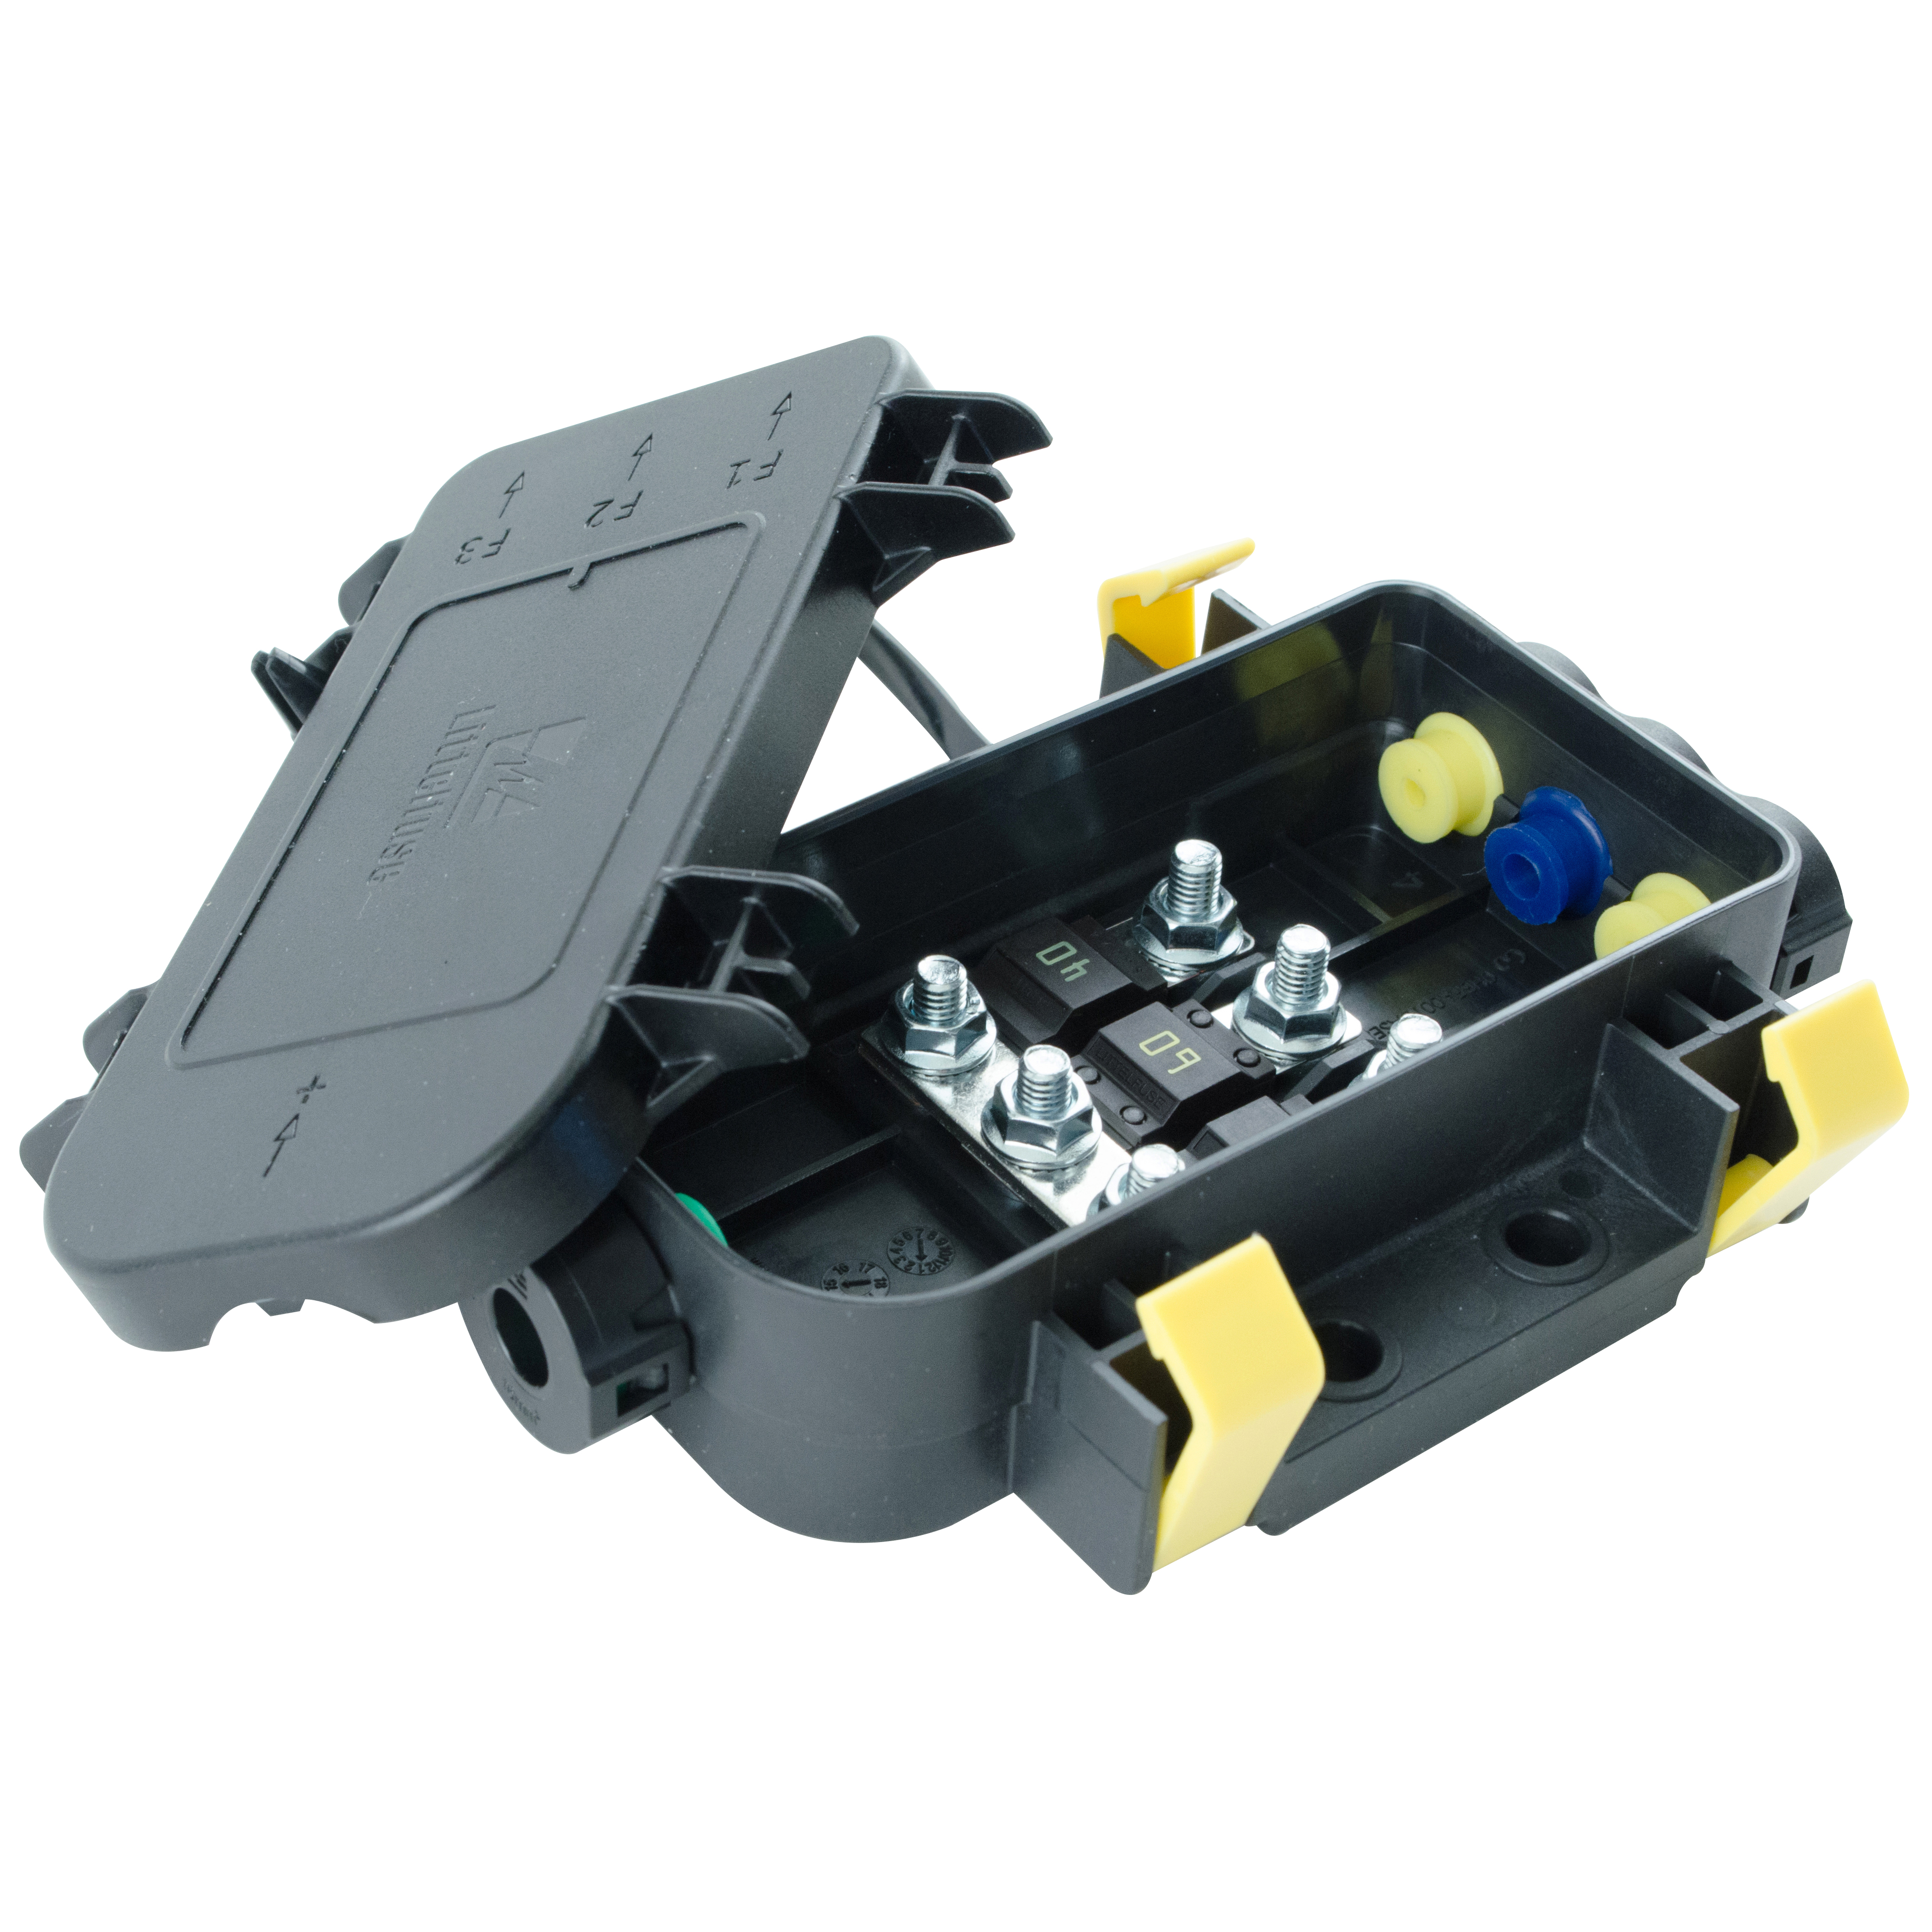 small resolution of car fuse box modular wiring diagram g9 car fuse box diagram car fuse box modular